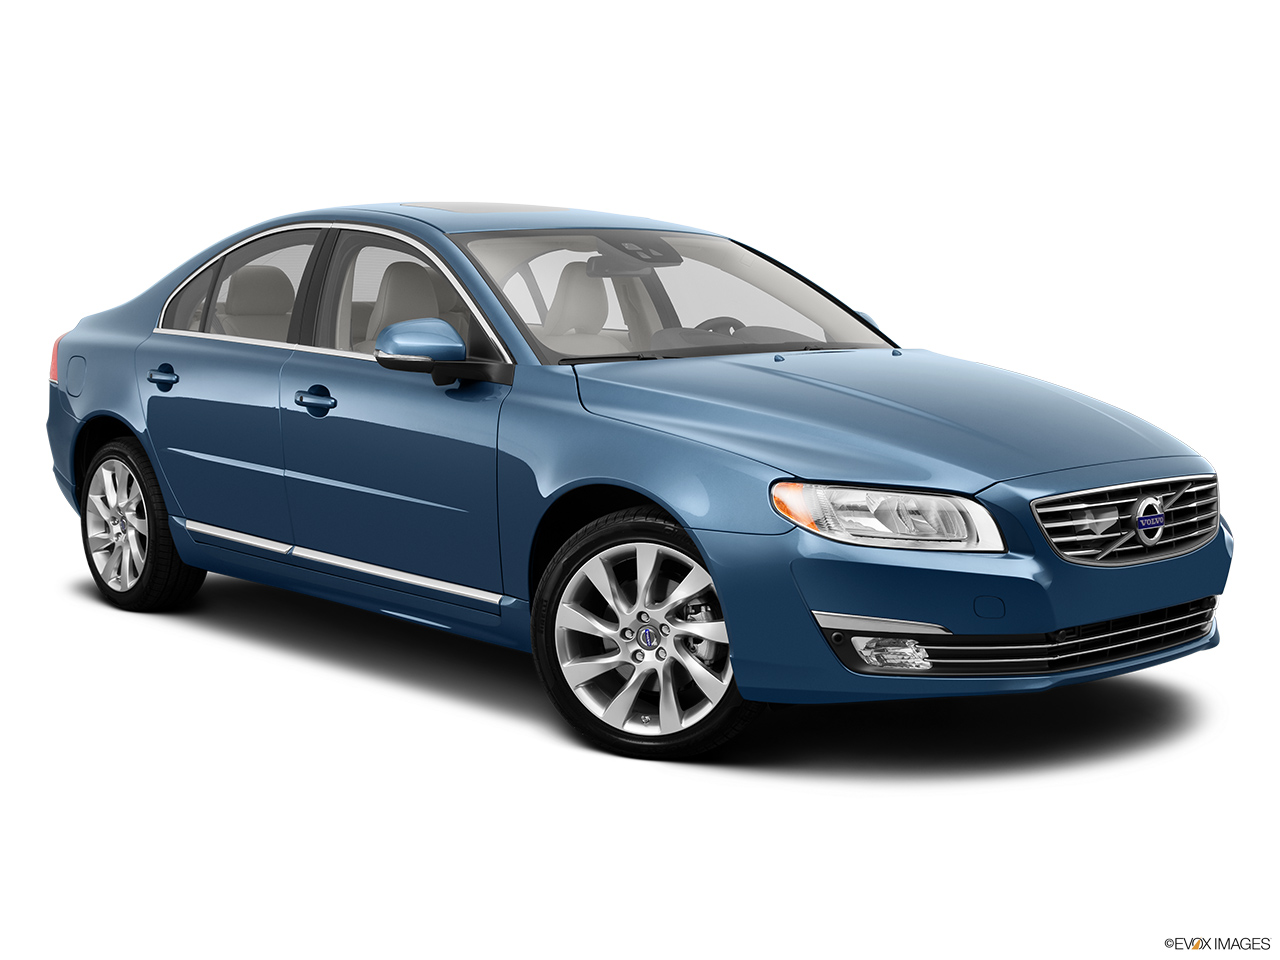 2014 Volvo S80 T6 AWD Platinum Front passenger 3/4 w/ wheels turned.